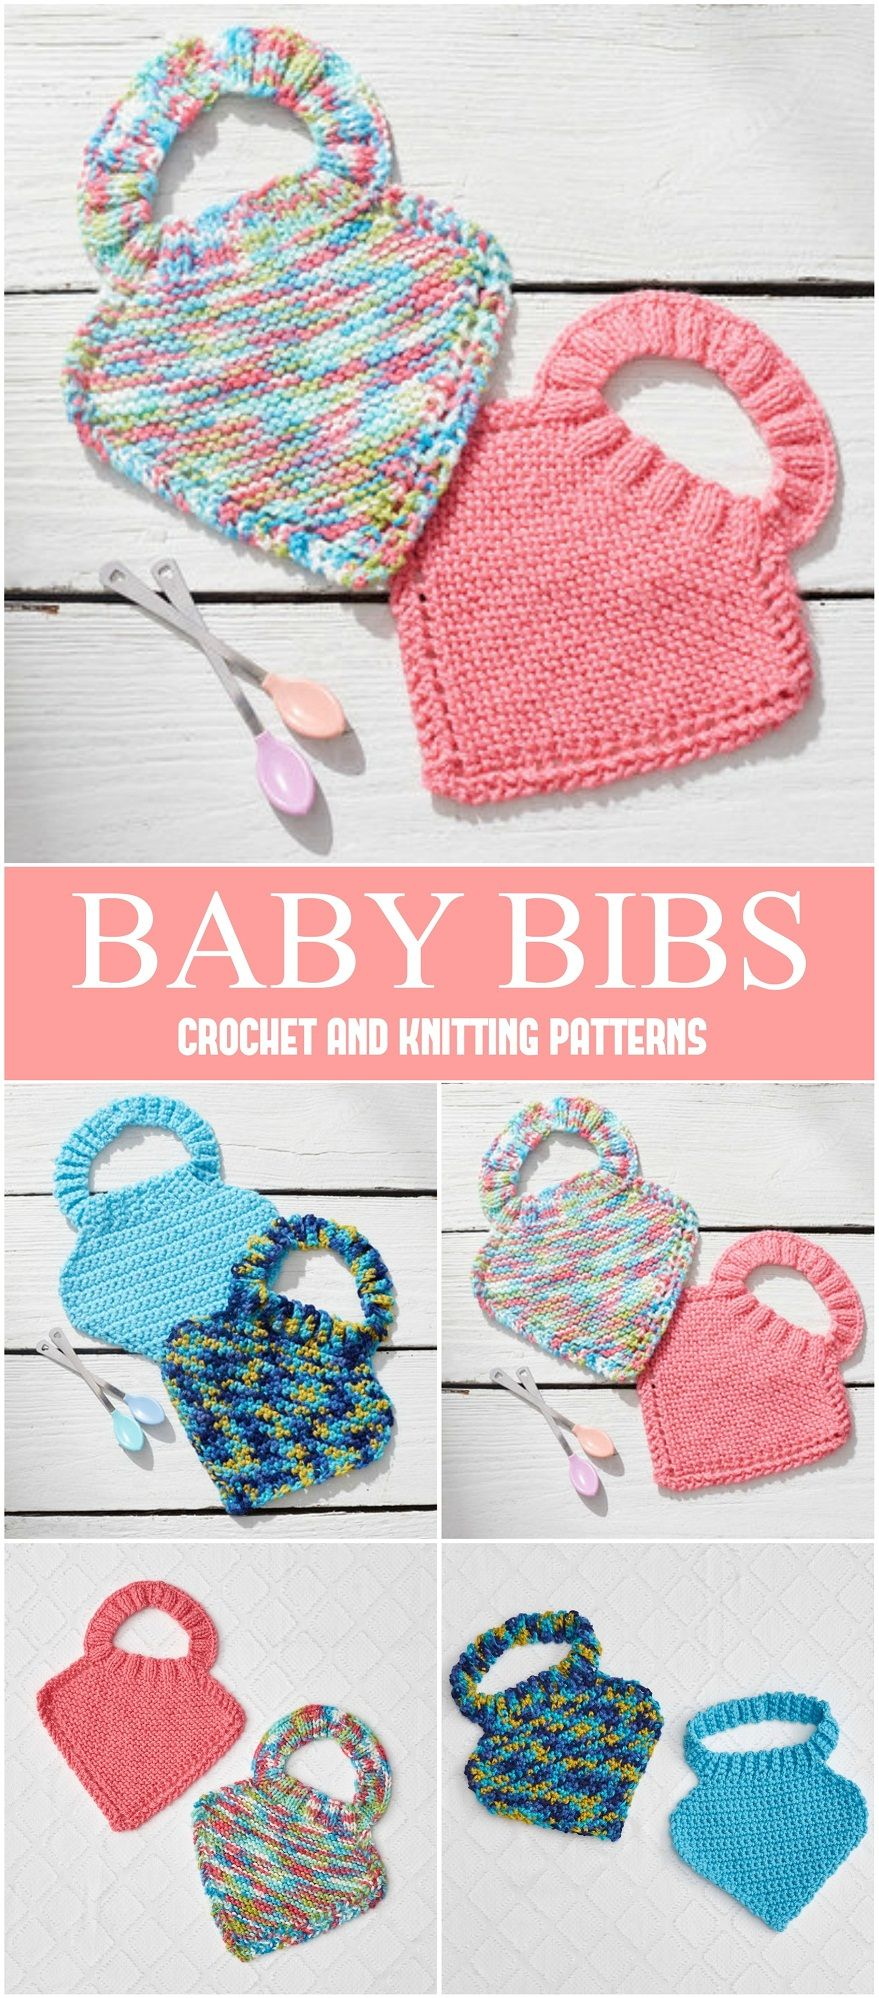 Crochet or Knit Baby Bibs - Free Patterns | Knitting | Pinterest ...